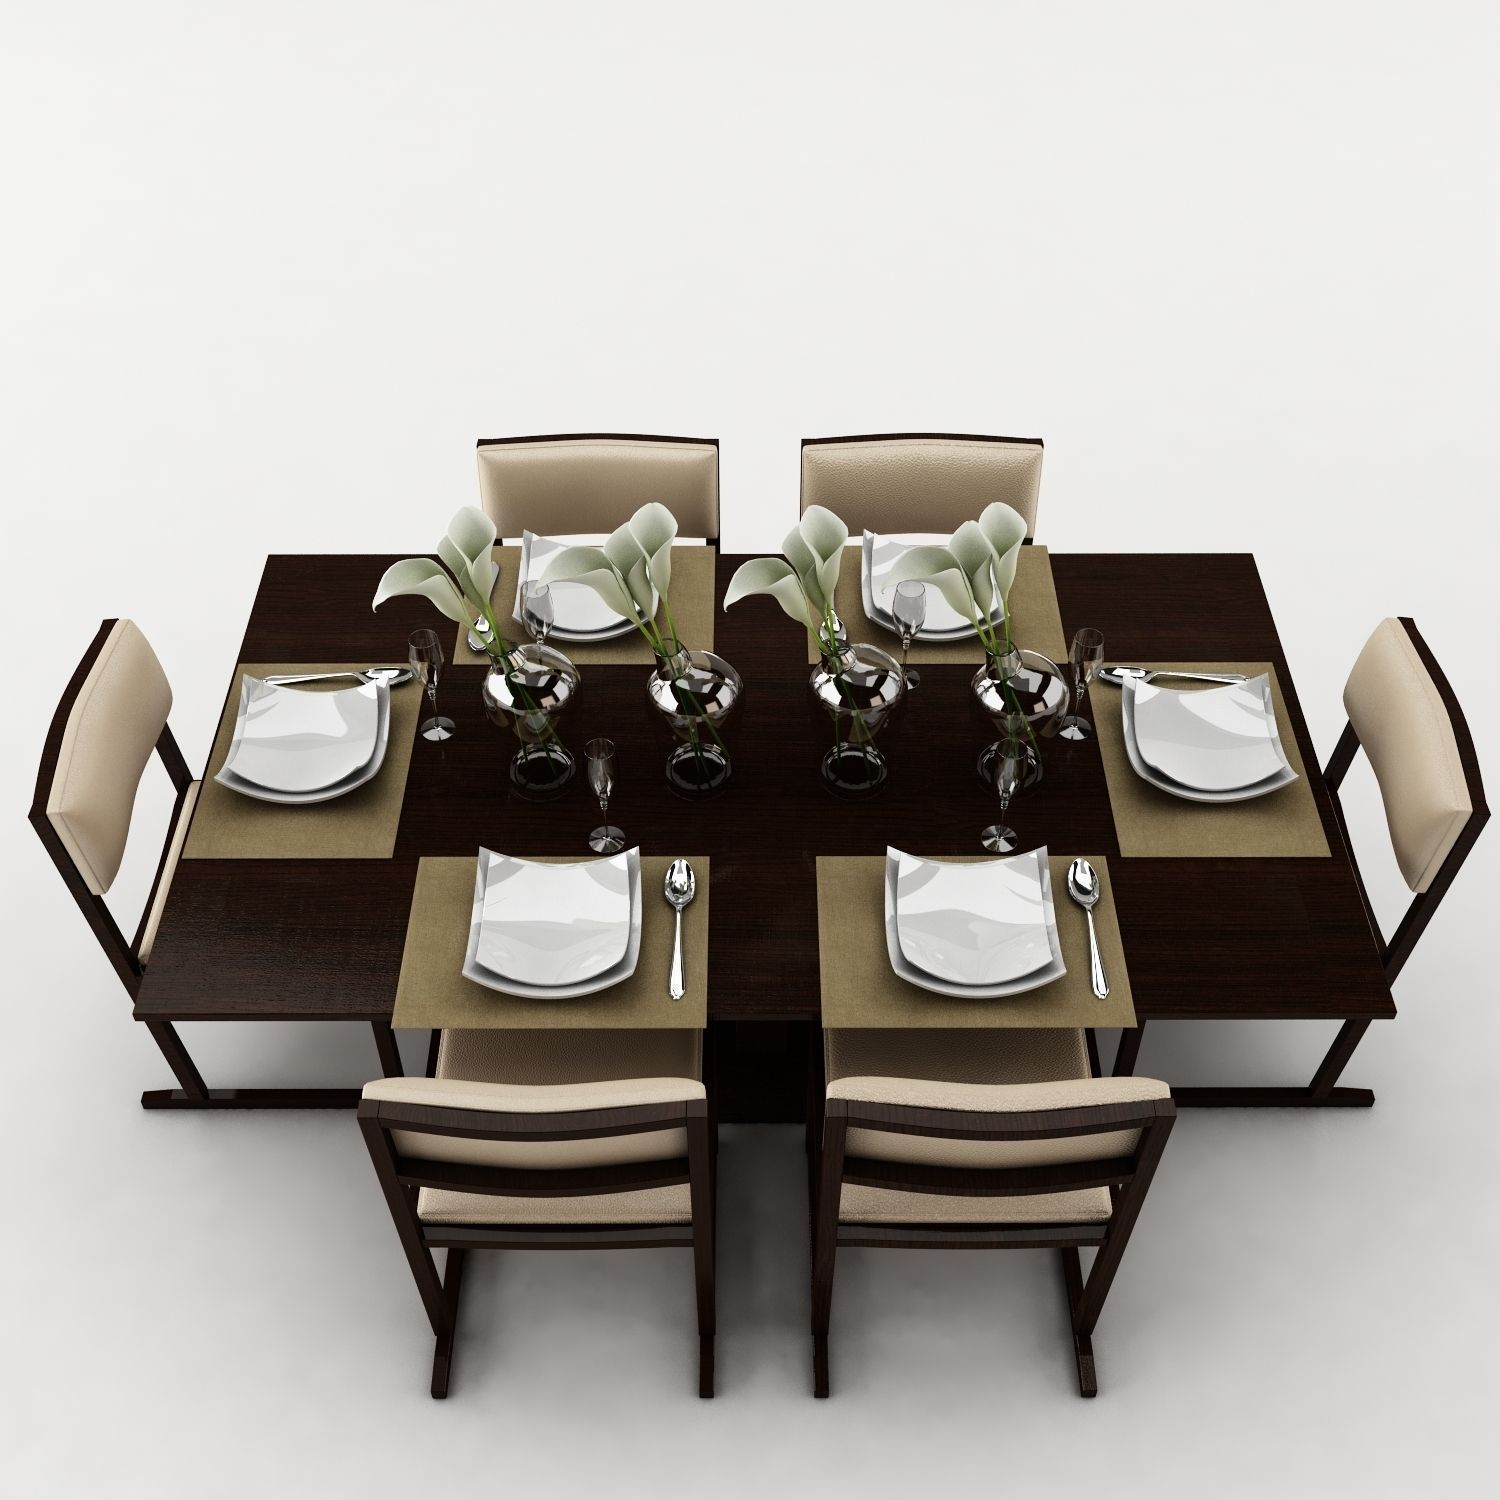 Dining table set 20 3d model max obj 3ds fbx for Dining room table 3ds max